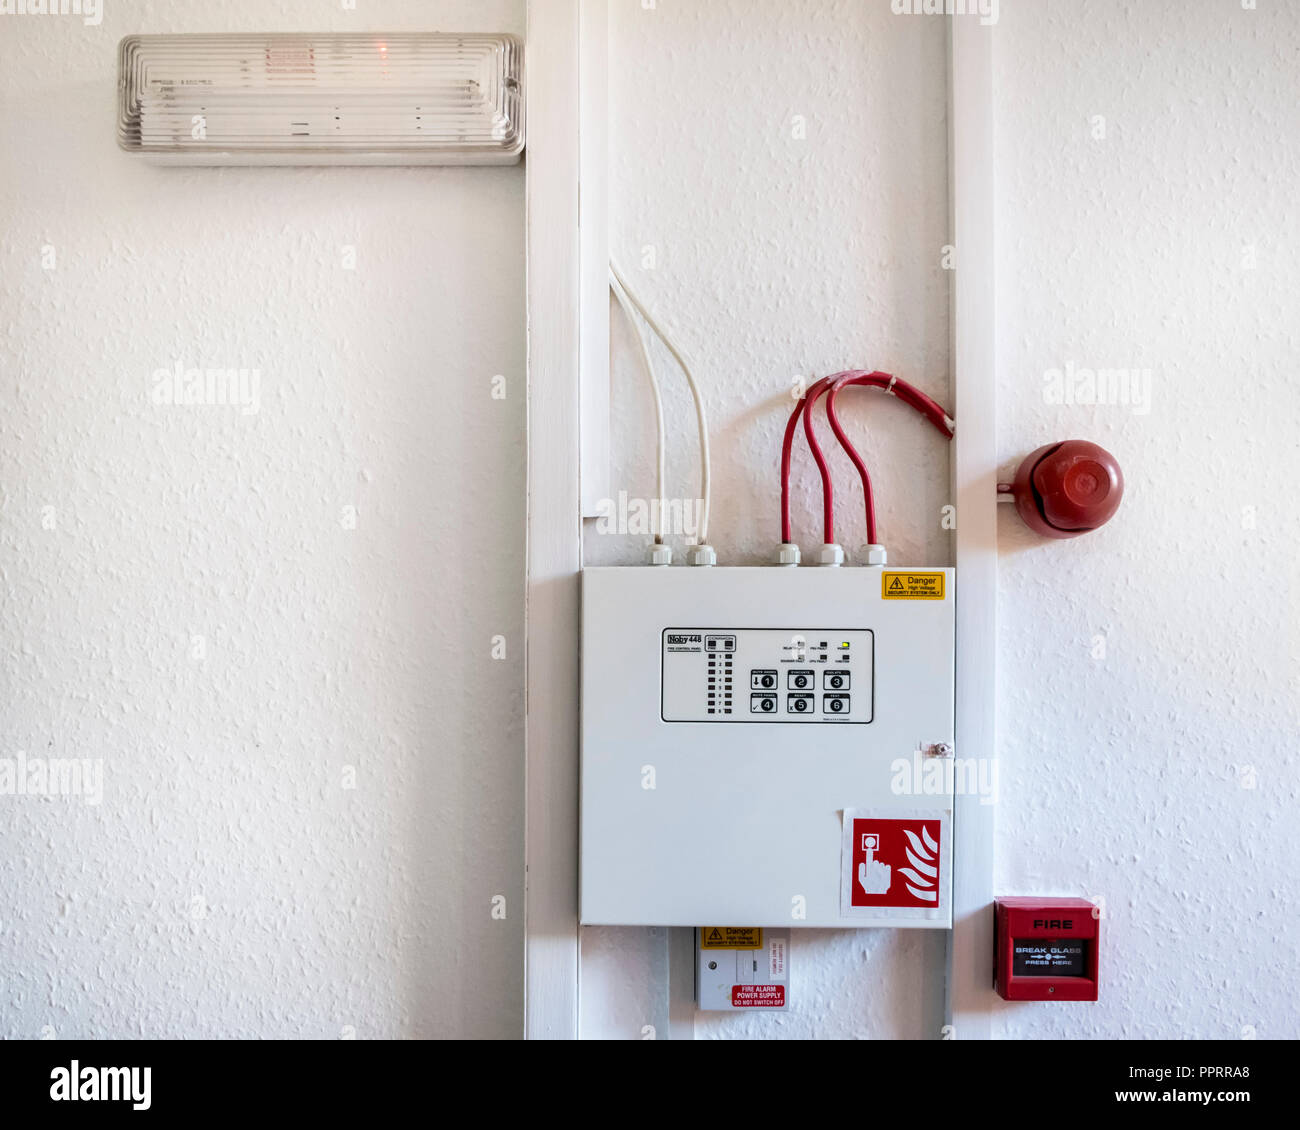 Admirable Fire Alarm System Stock Photos Fire Alarm System Stock Images Alamy Wiring Cloud Tobiqorsaluggs Outletorg